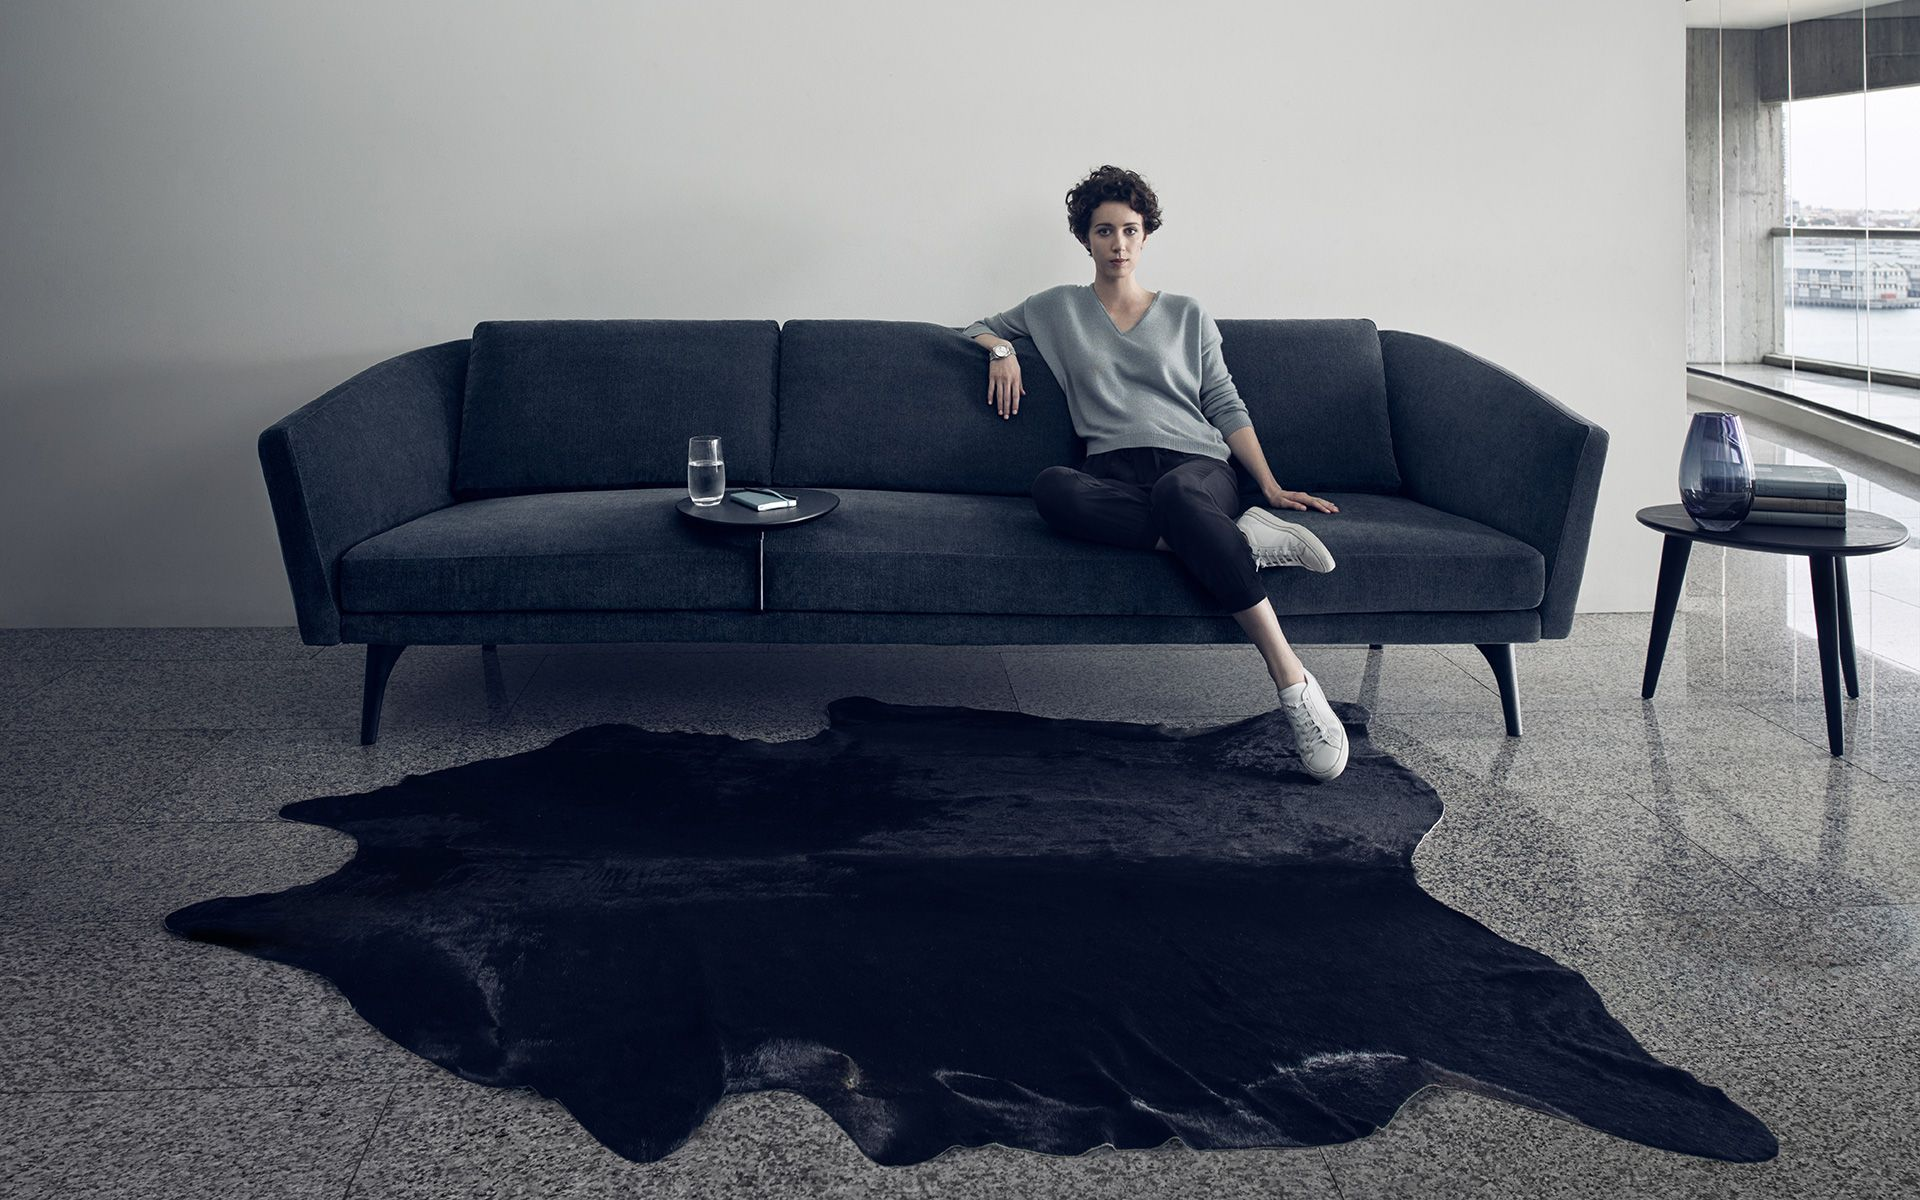 4 Things To Consider When Shopping For A Sofa